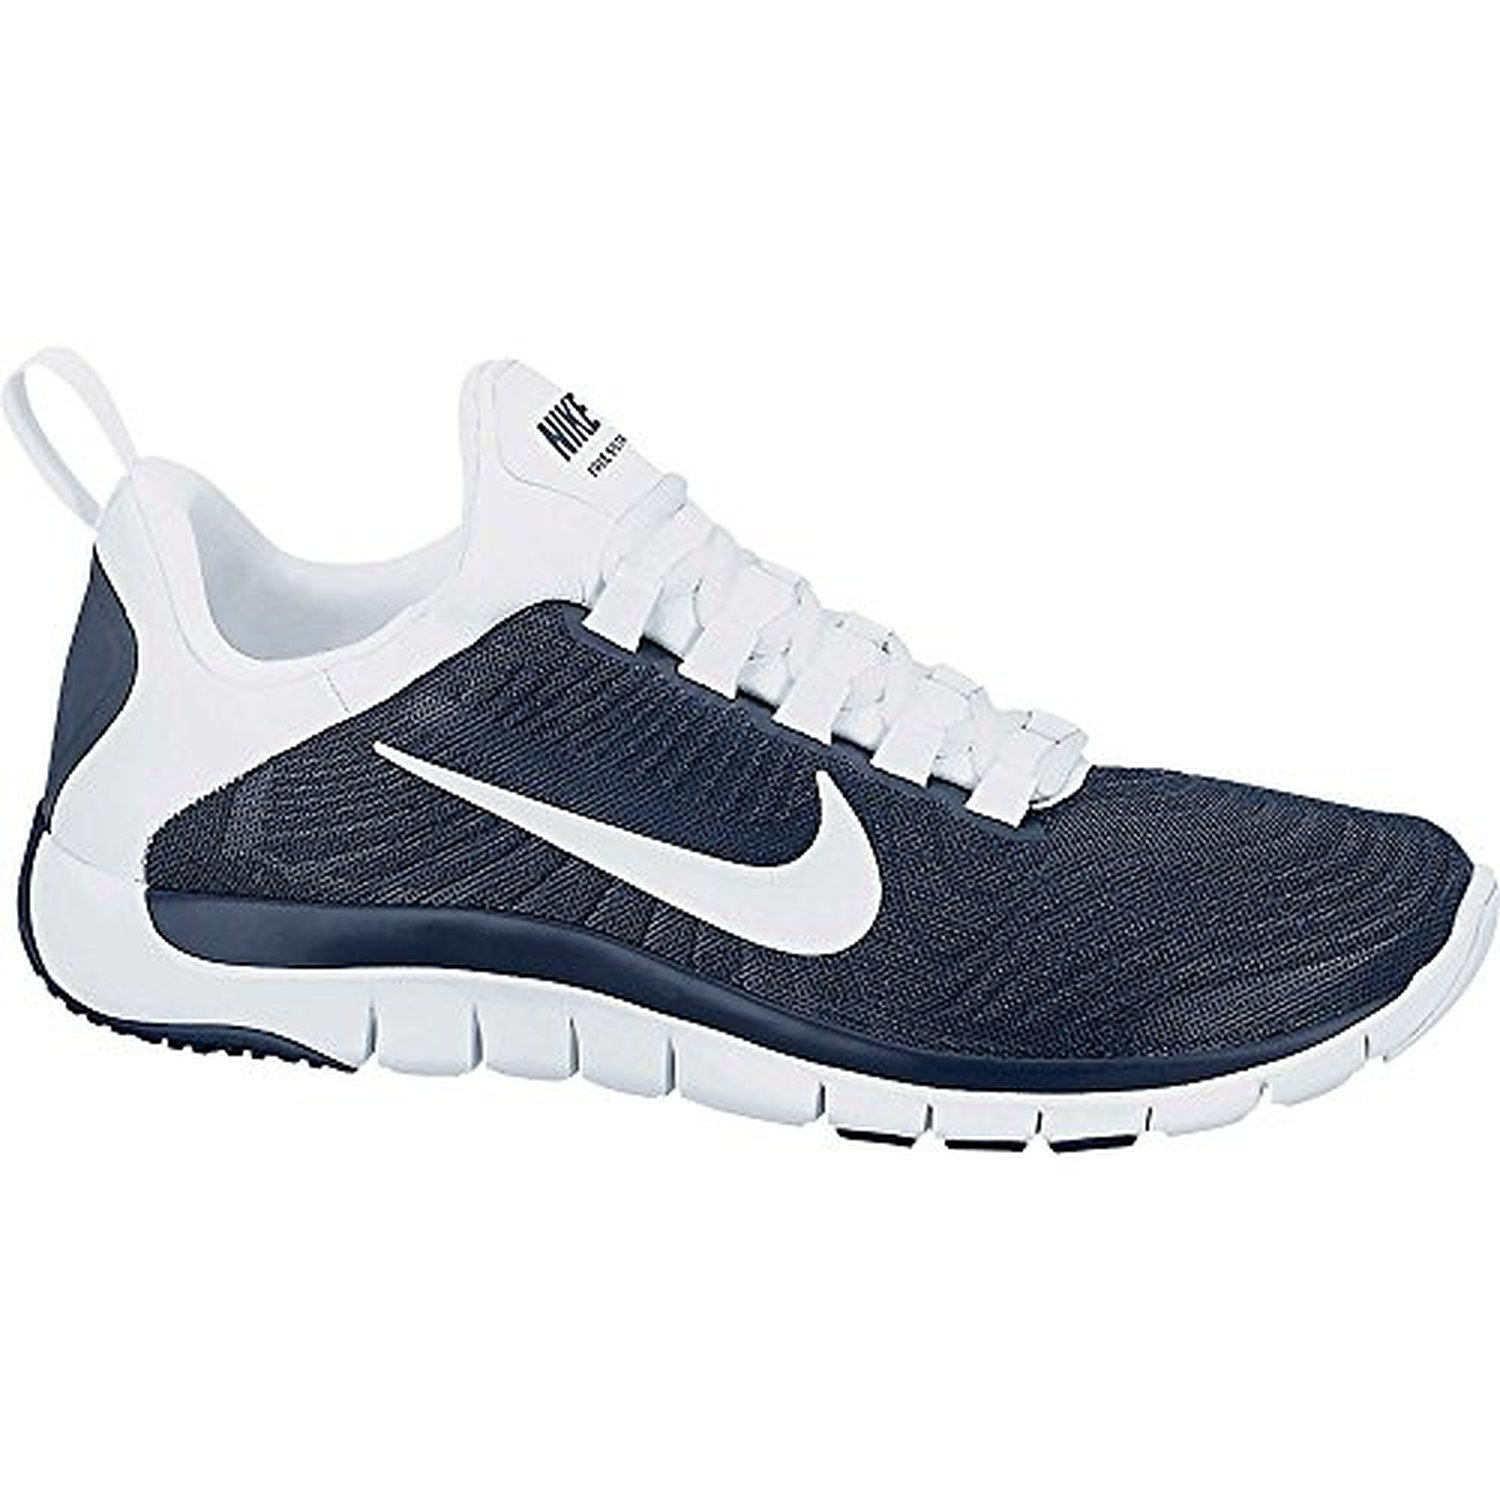 Top 10 Best Nike Free Trainer 5.0 Models — Reviewing Your Choices in 2020